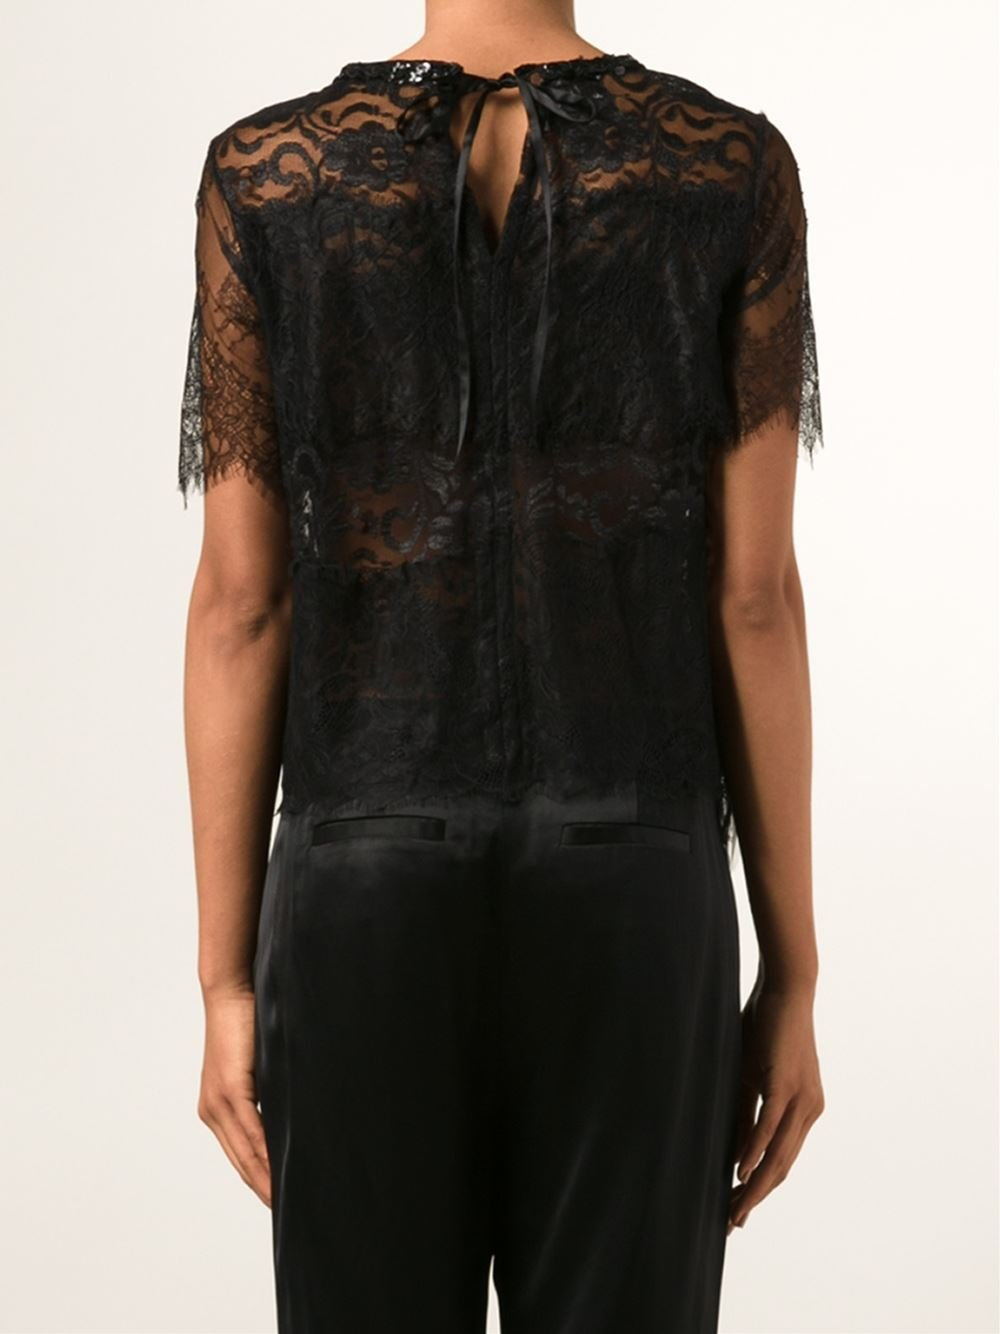 Loyd/Ford Beaded Lace Top in Black